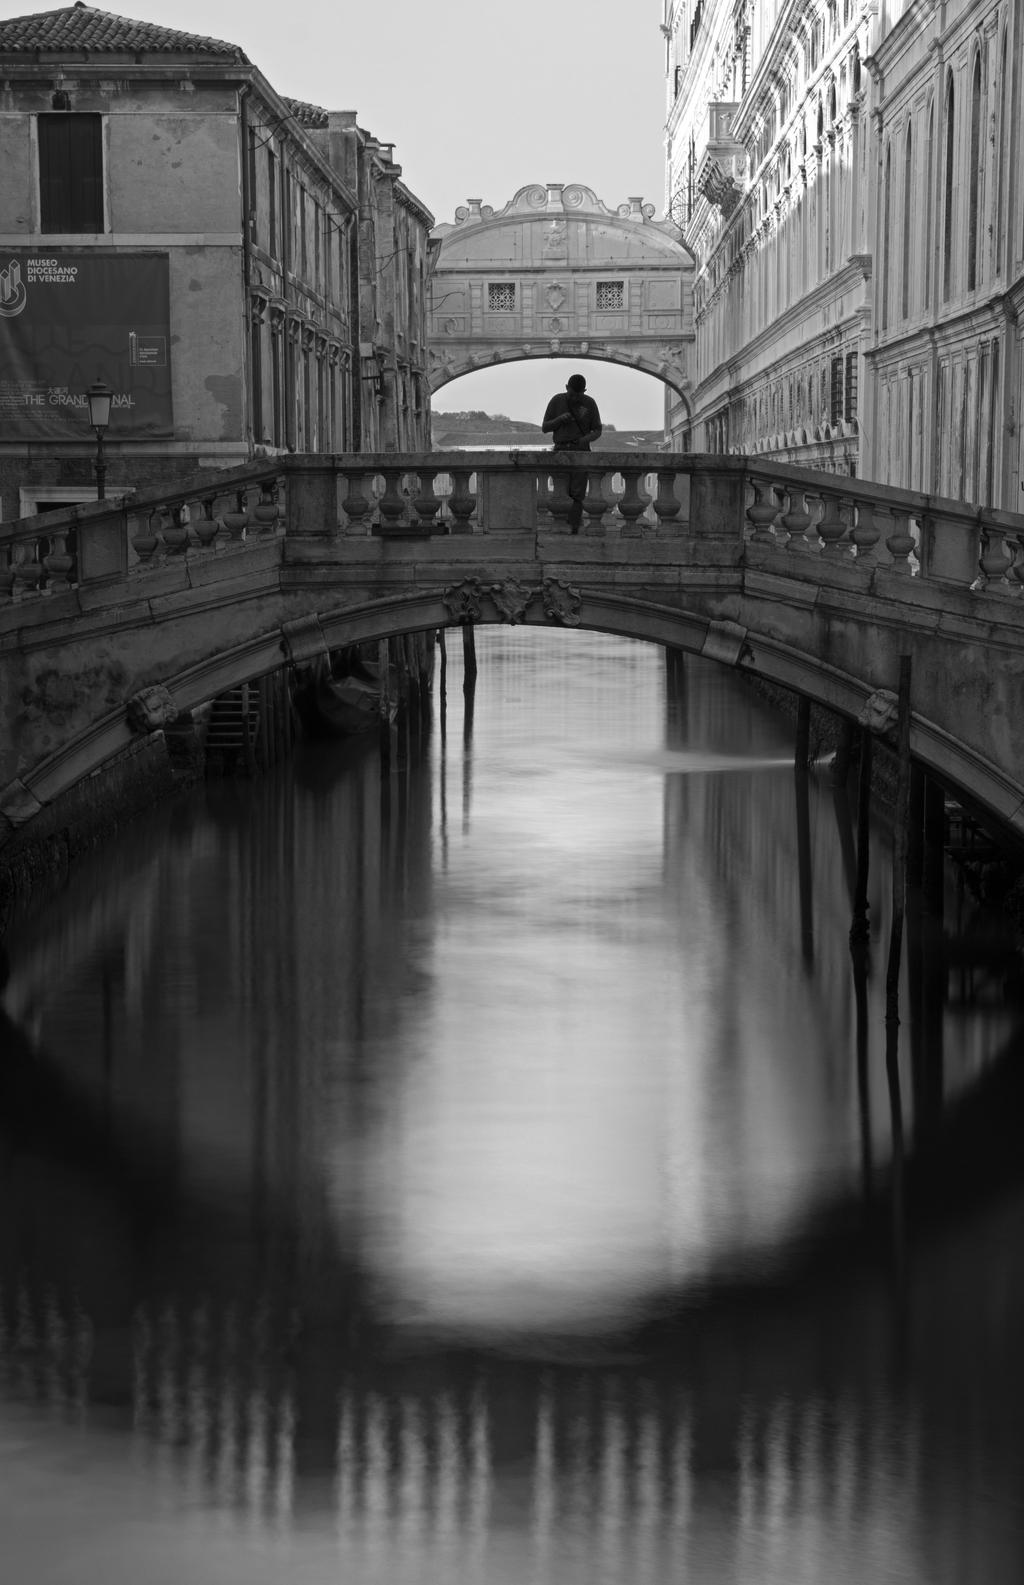 Man Under Bridge of Sighs BW by Camel51